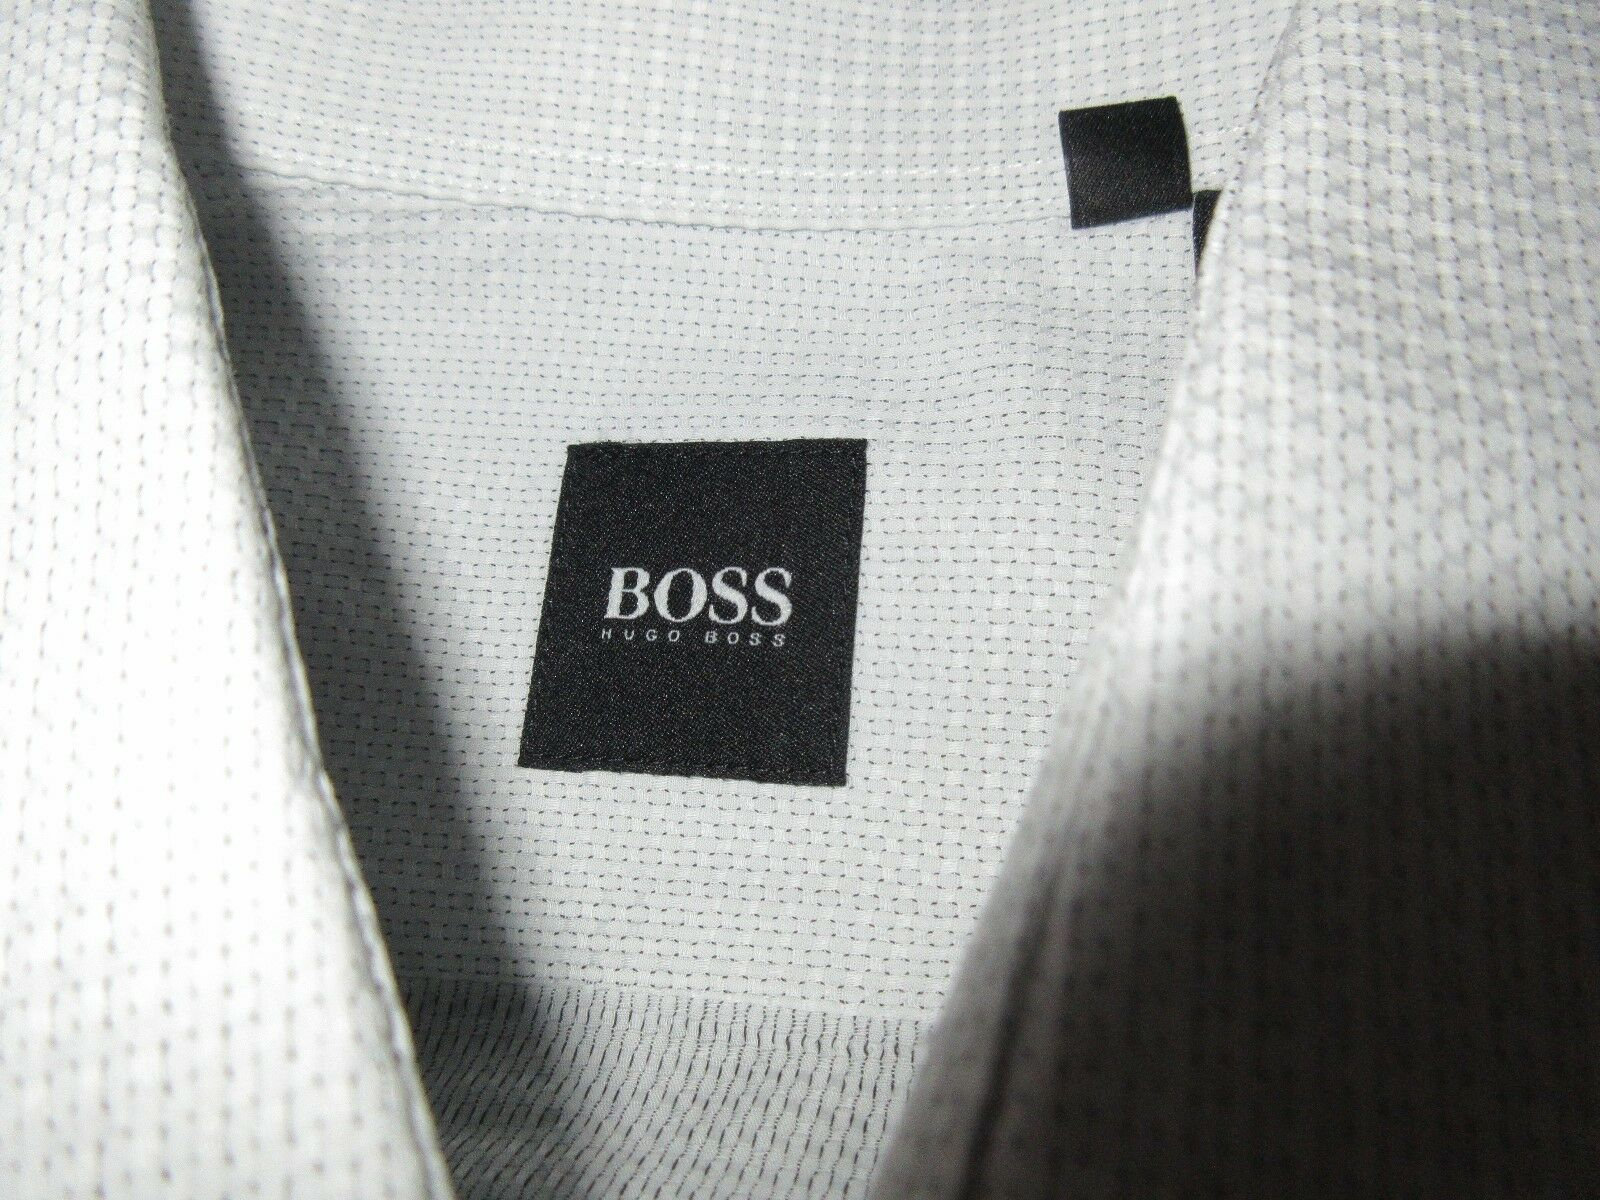 Boss , Hugo BOSS MEN'S Long Sleeve Shirt , XL